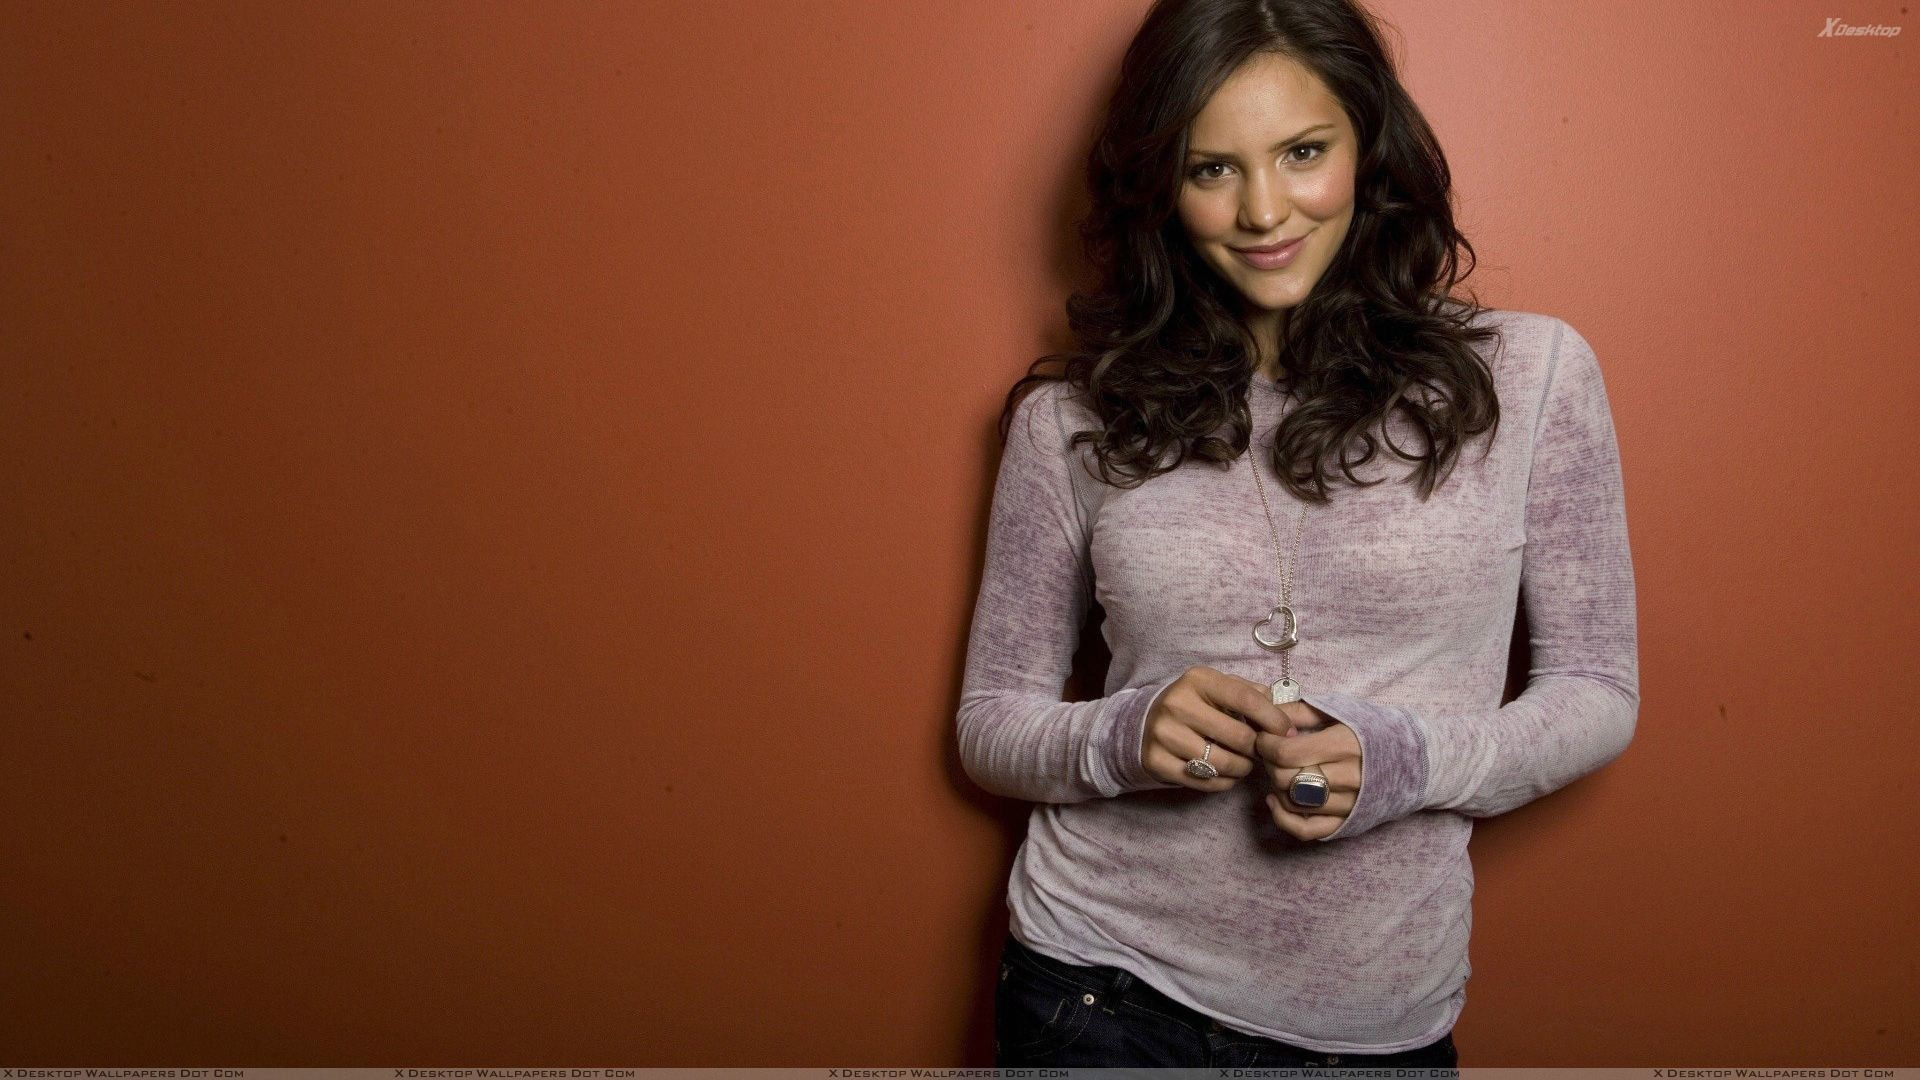 1920x1080 Categories: Female Celebrities. Tags: Katharine McPhee